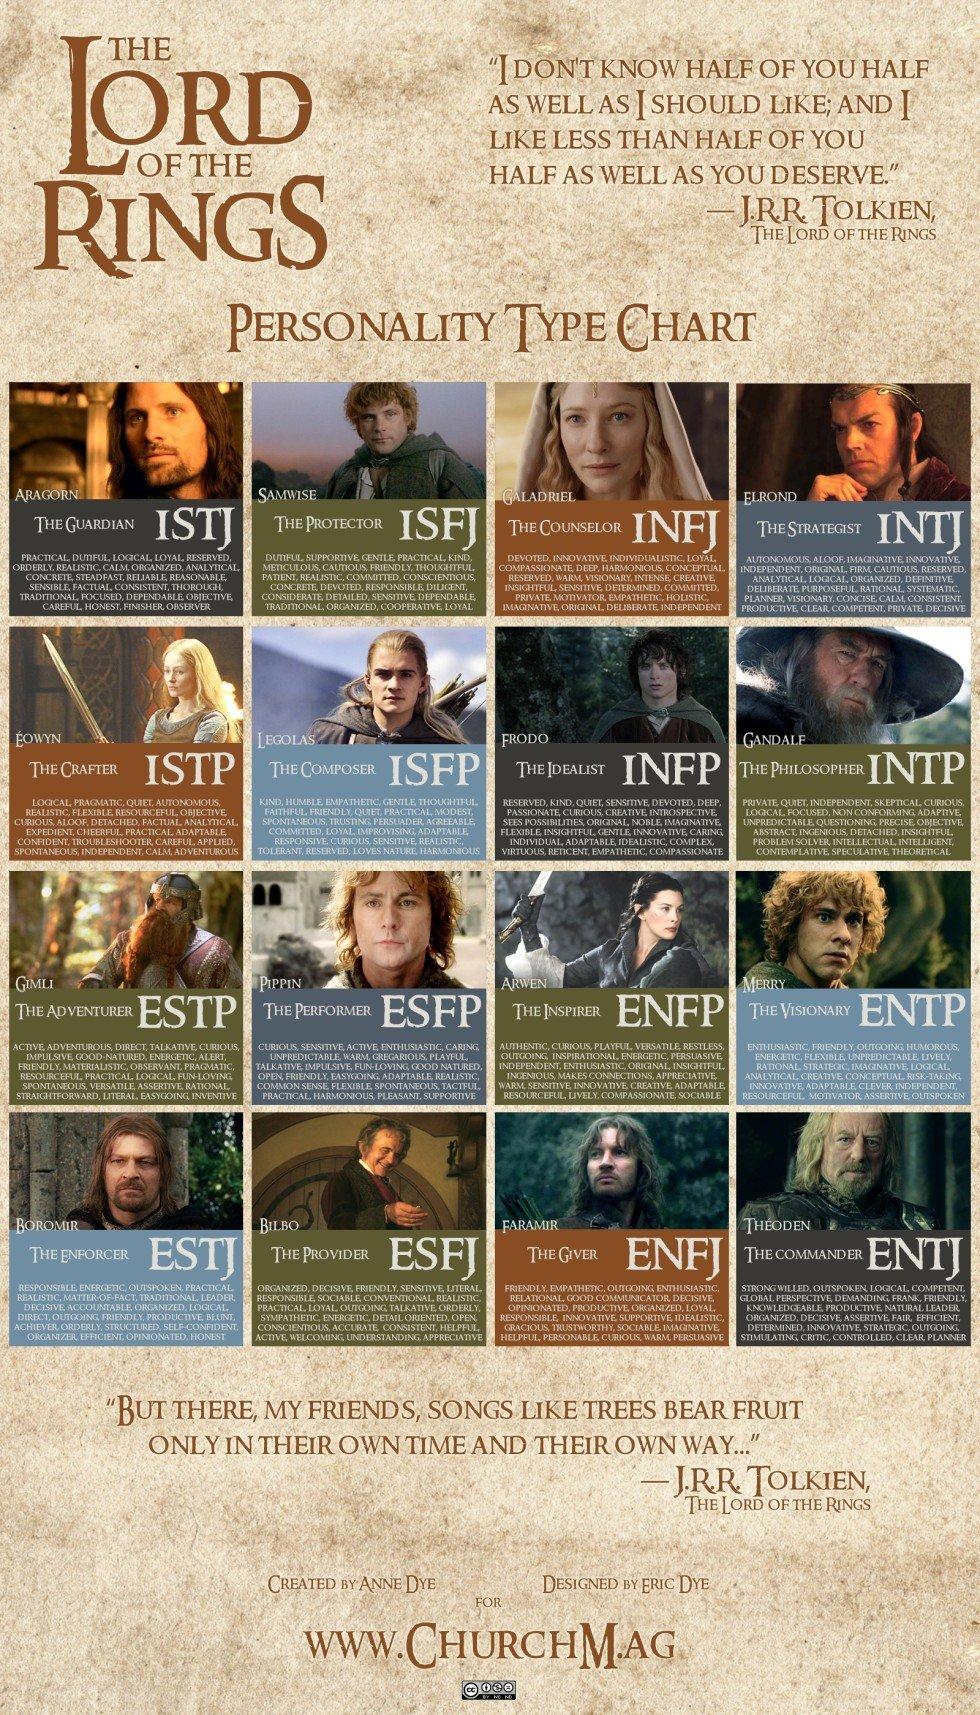 LOTR Lord of the Rings Personality Chart Myers-Briggs Type MBTI